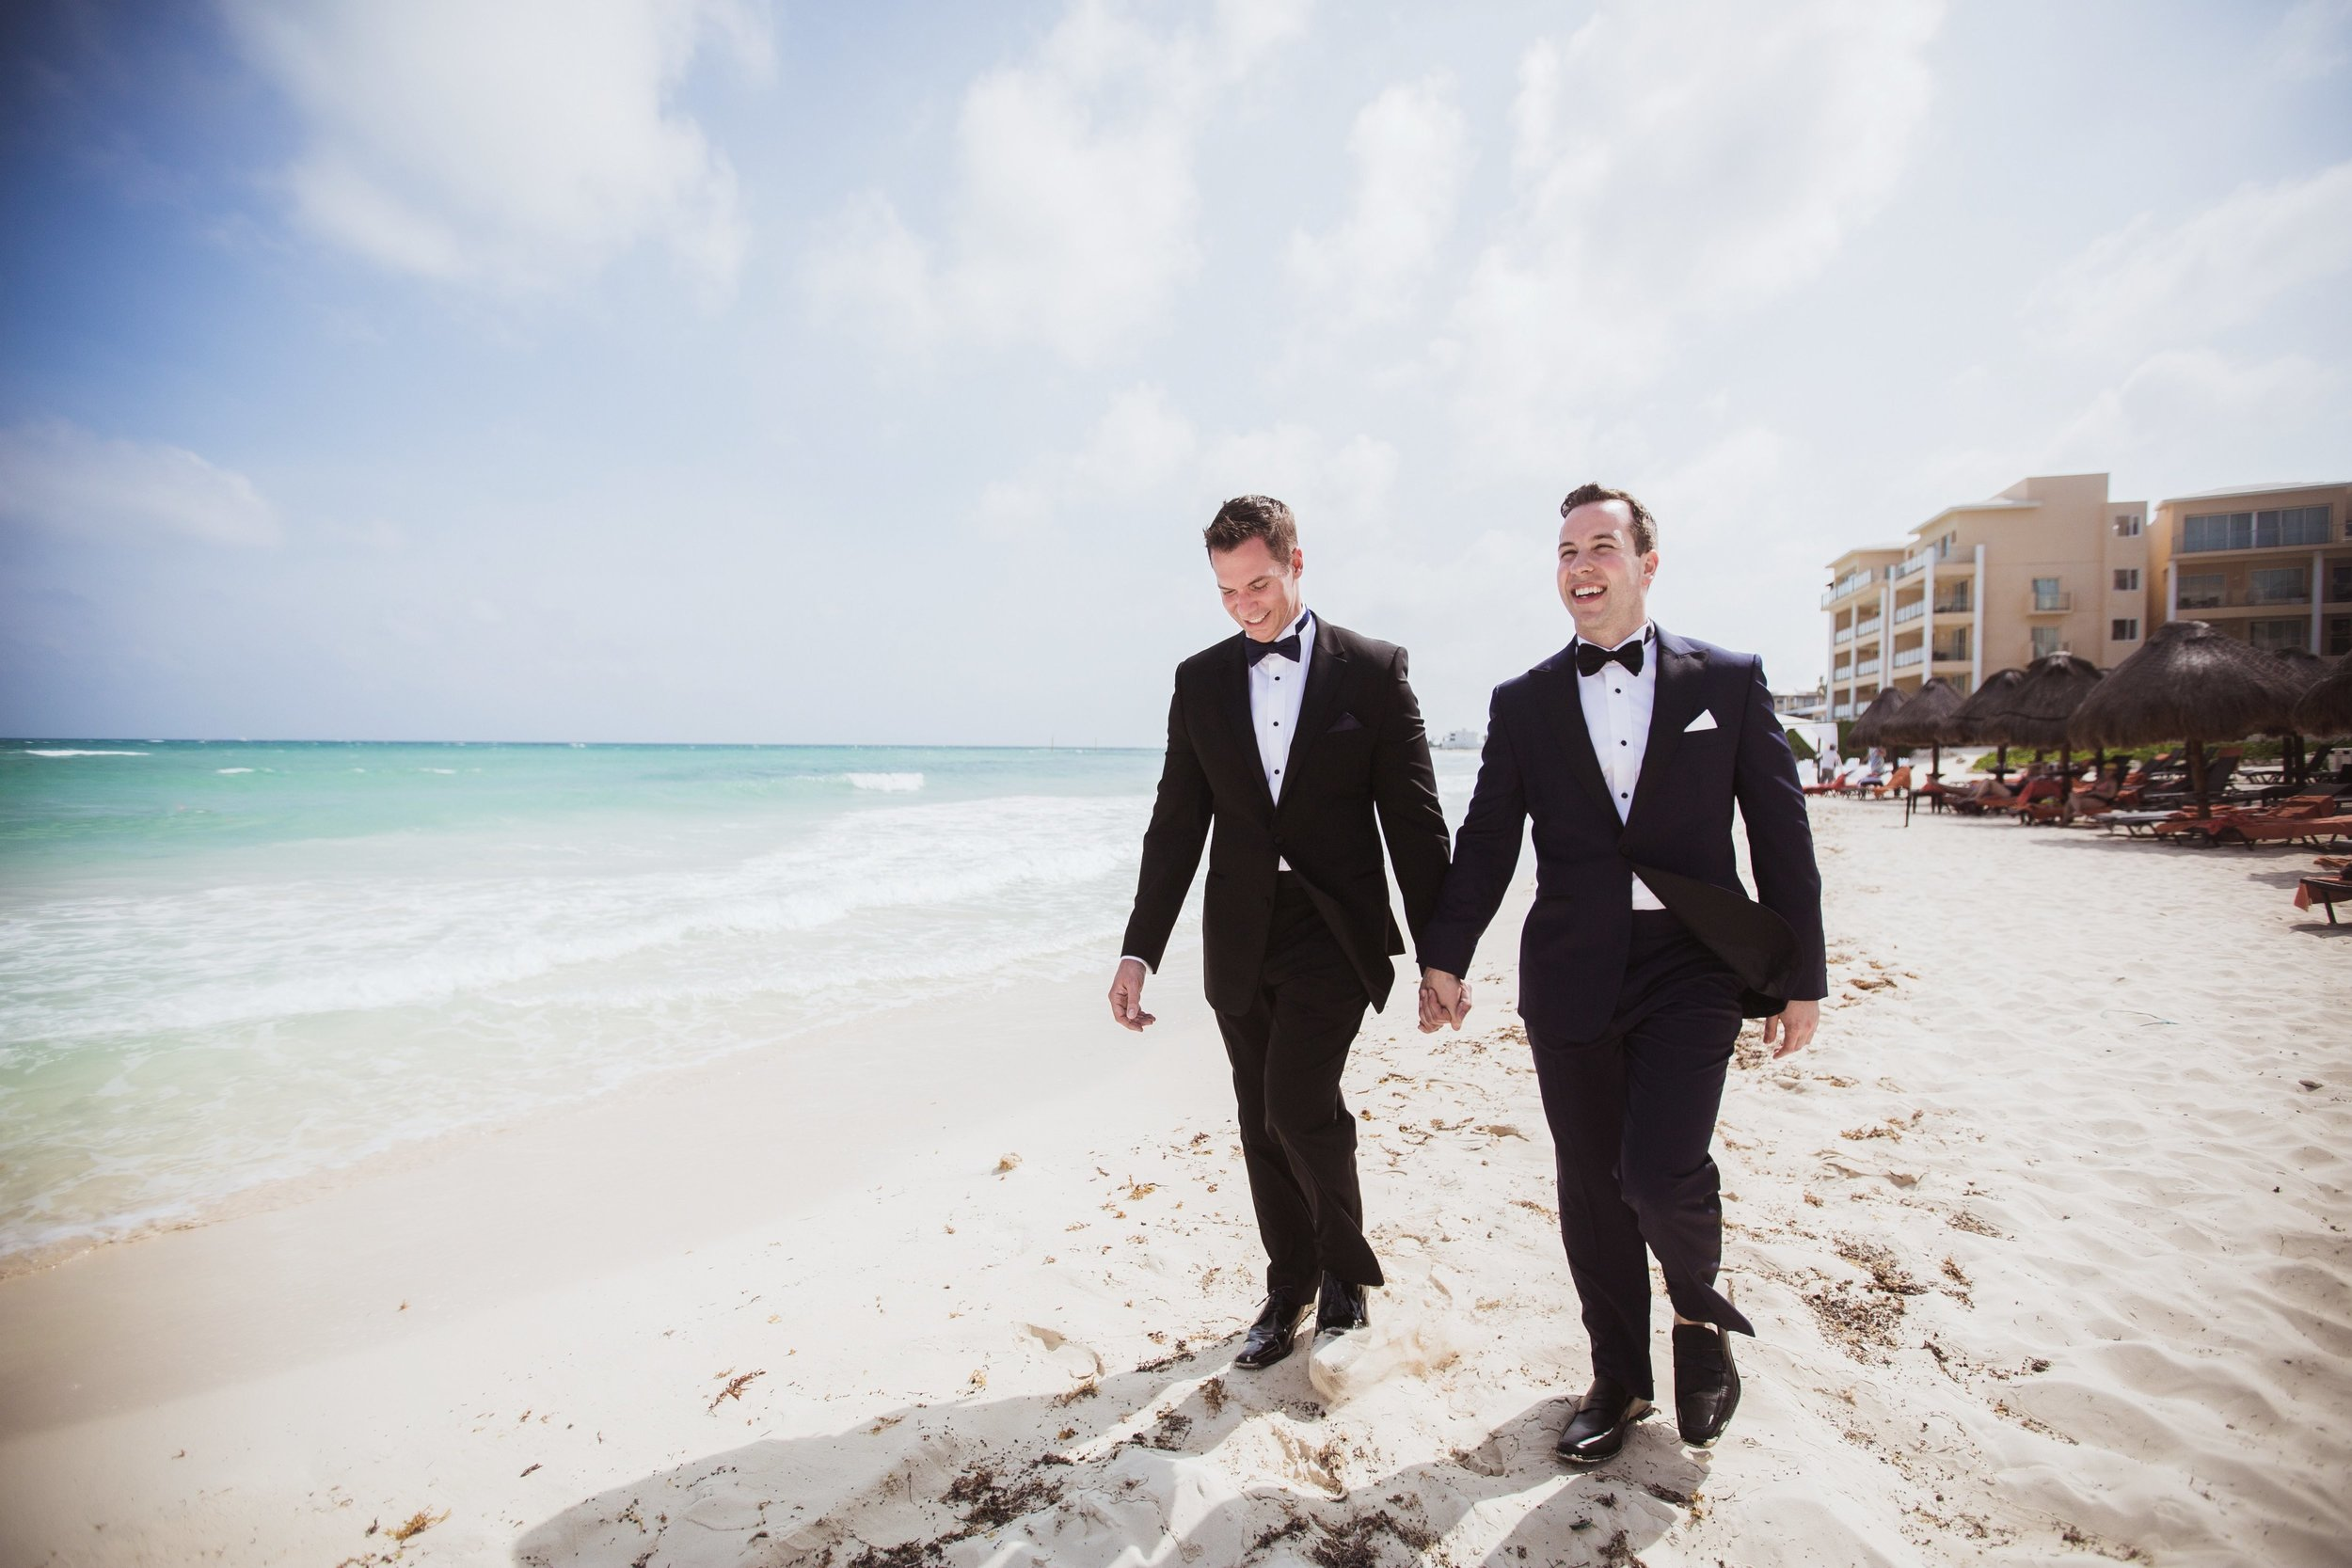 2+Justin-and-Bill-Wedding-Cancun-Mexico-by-Stefan-Ludwig-Photography-Buffalo-NY-94-x.jpg